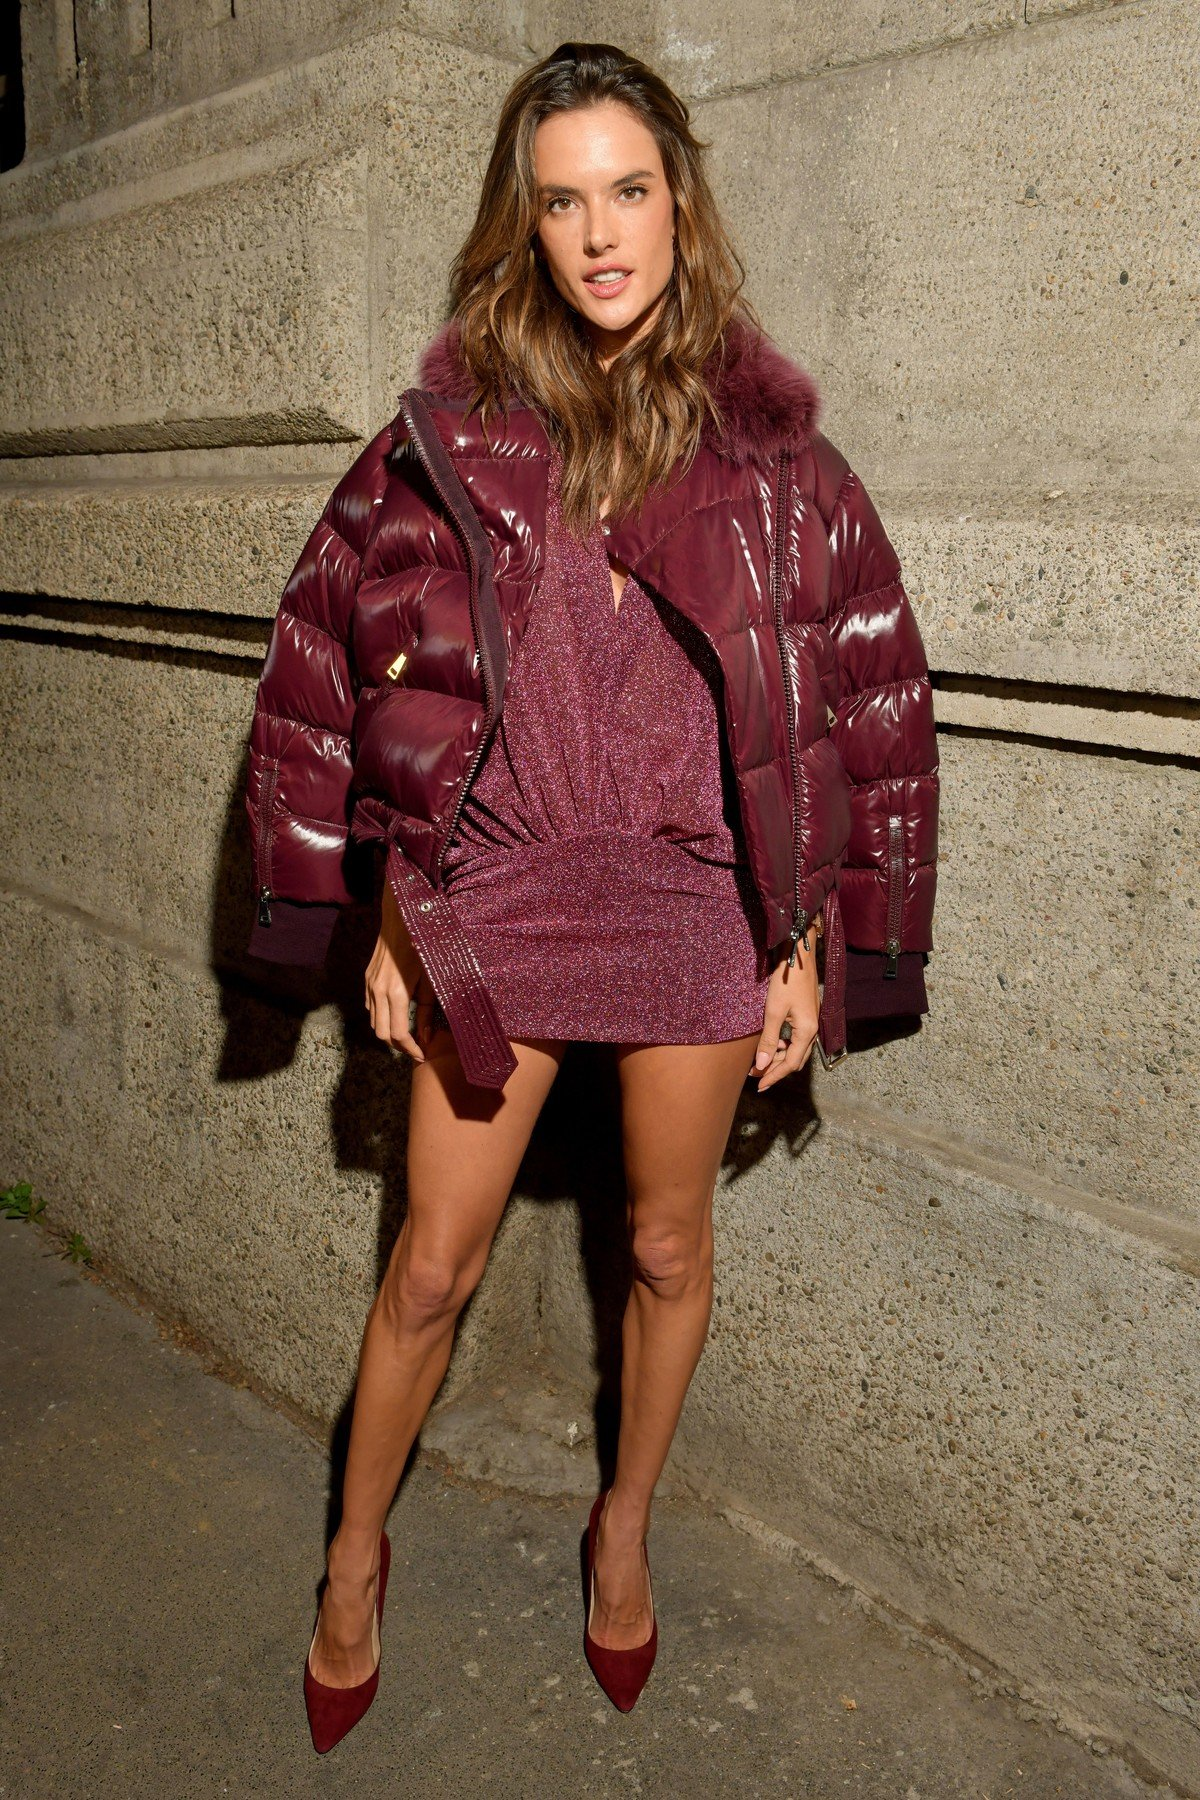 Alessandra Ambrosio in the front row Moncler Genius show, Front Row, Fall Winter 2019, Milan Fashion Week, Italy - 20 Feb 2019, Image: 414945220, License: Rights-managed, Restrictions: , Model Release: no, Credit line: Profimedia, TEMP Rex Features